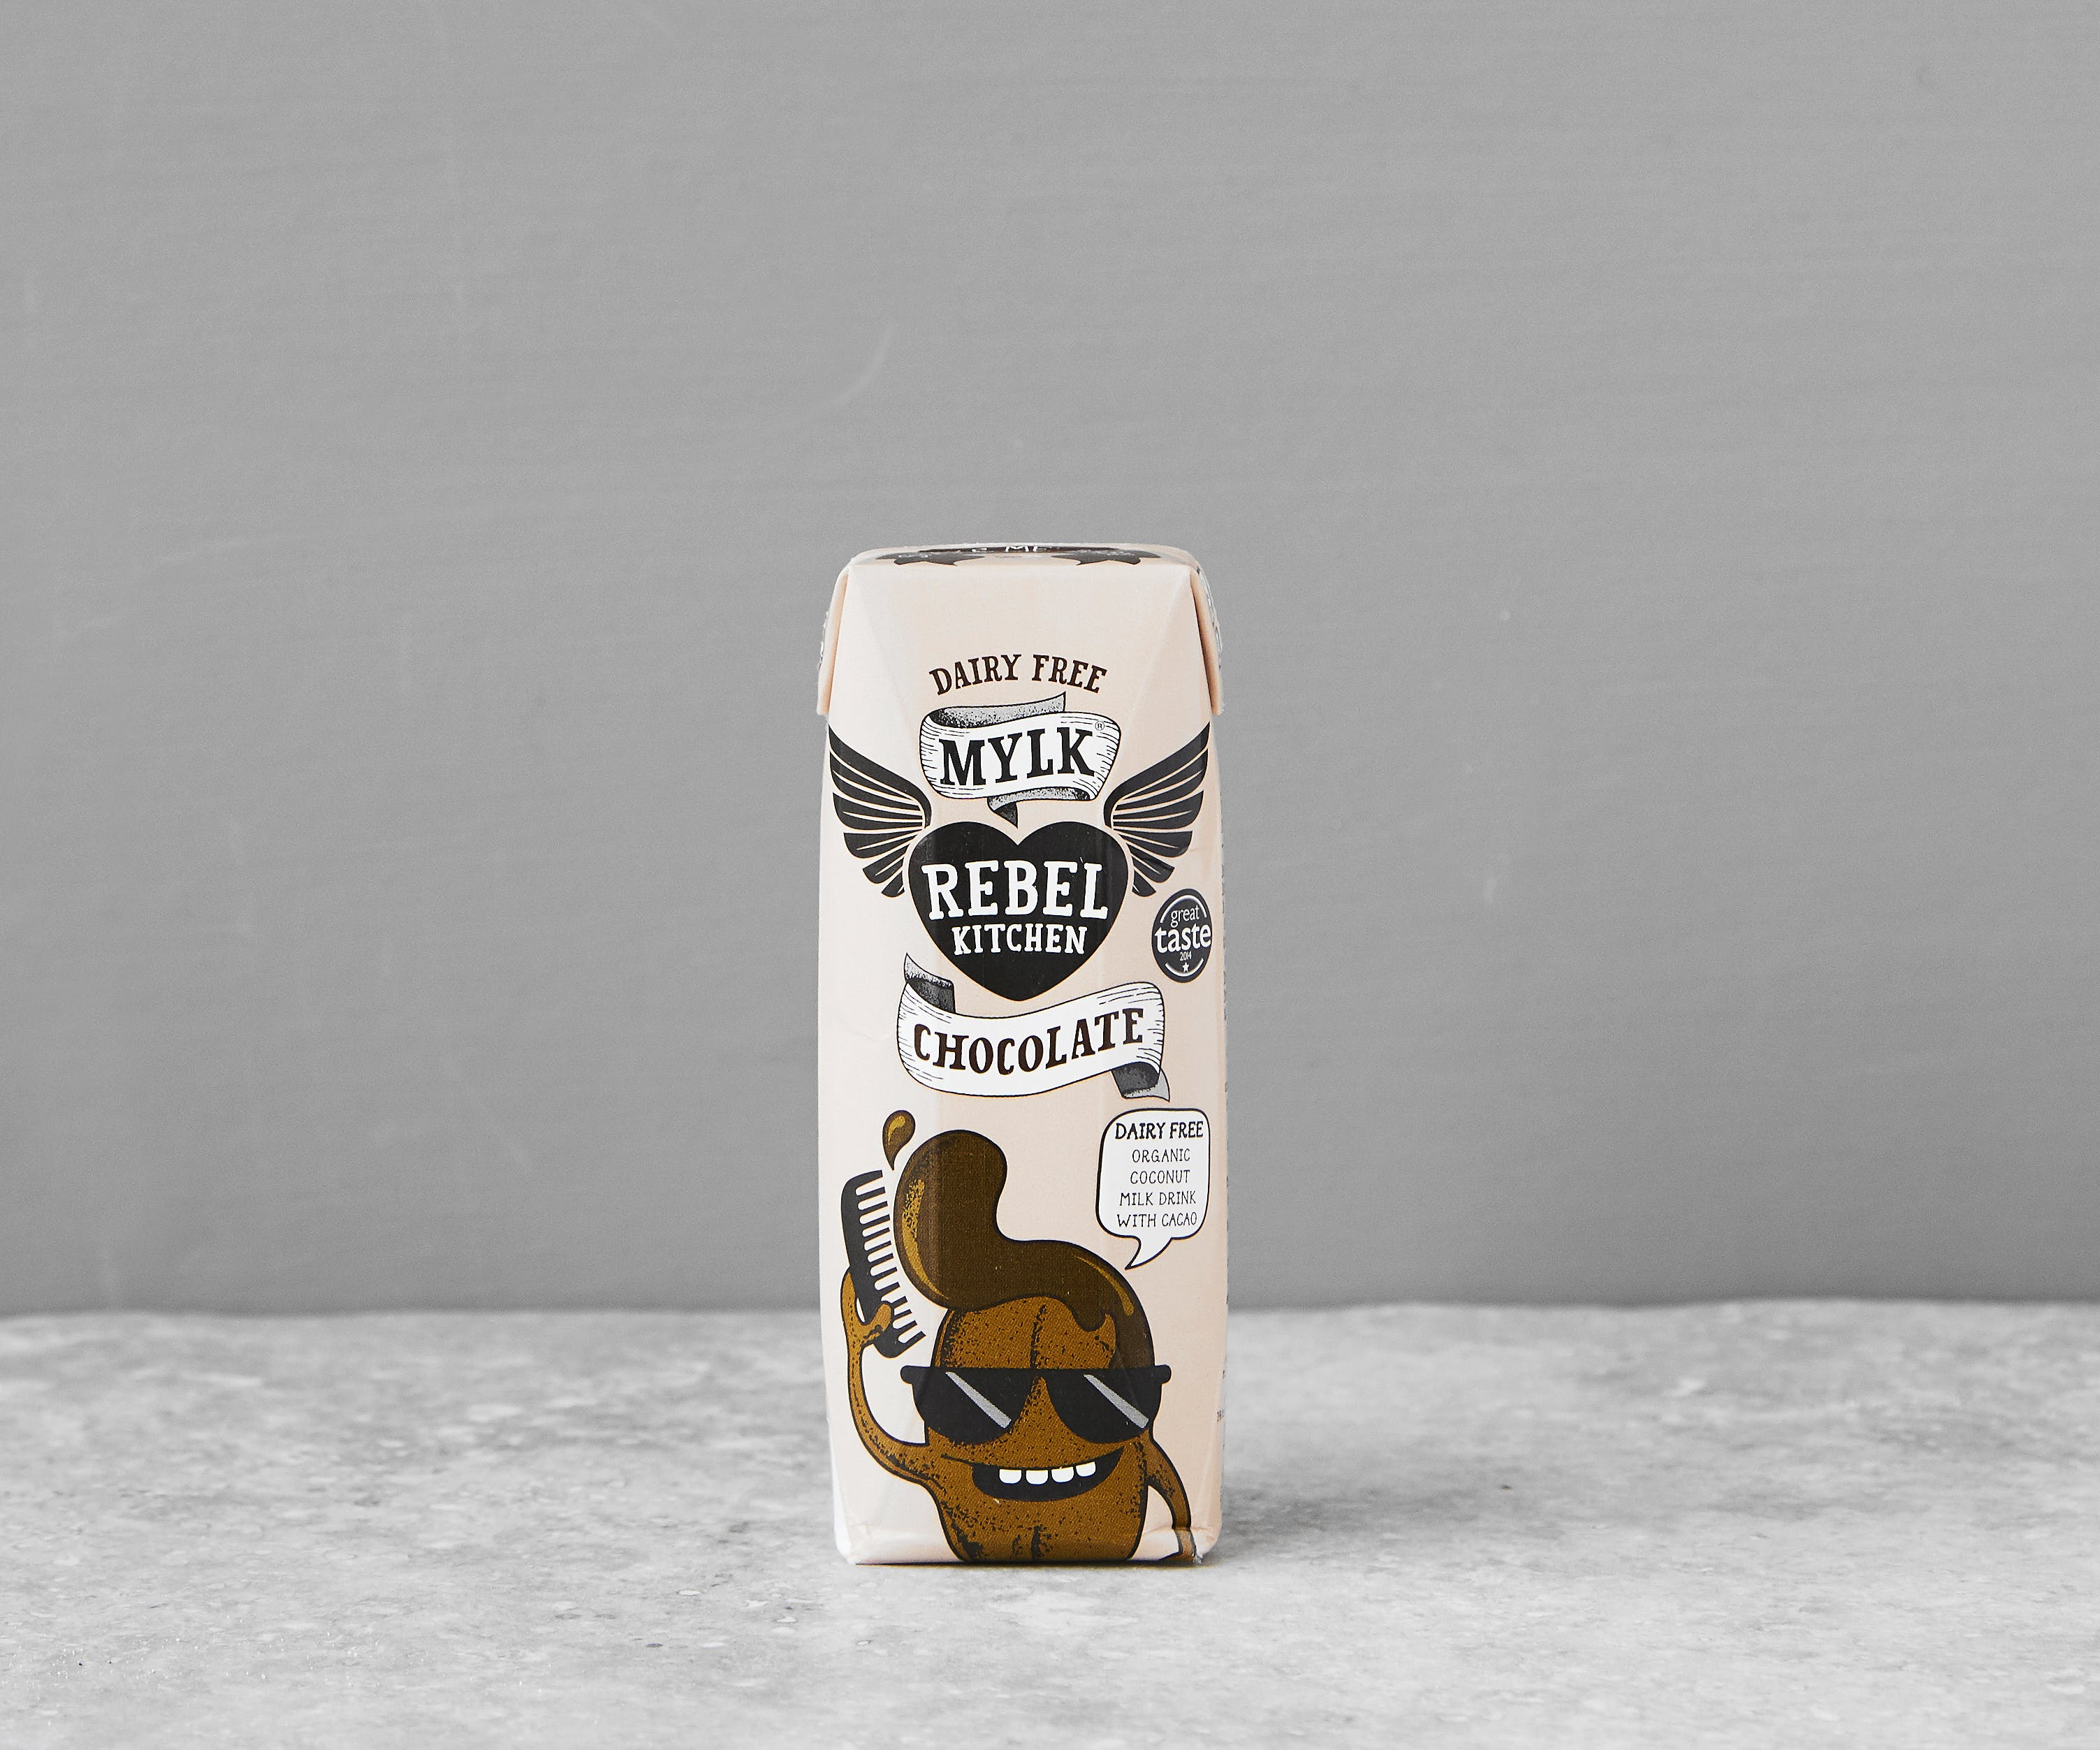 Rebel Kitchen Choco Dairy-Free Mylk (Milk Alternative)